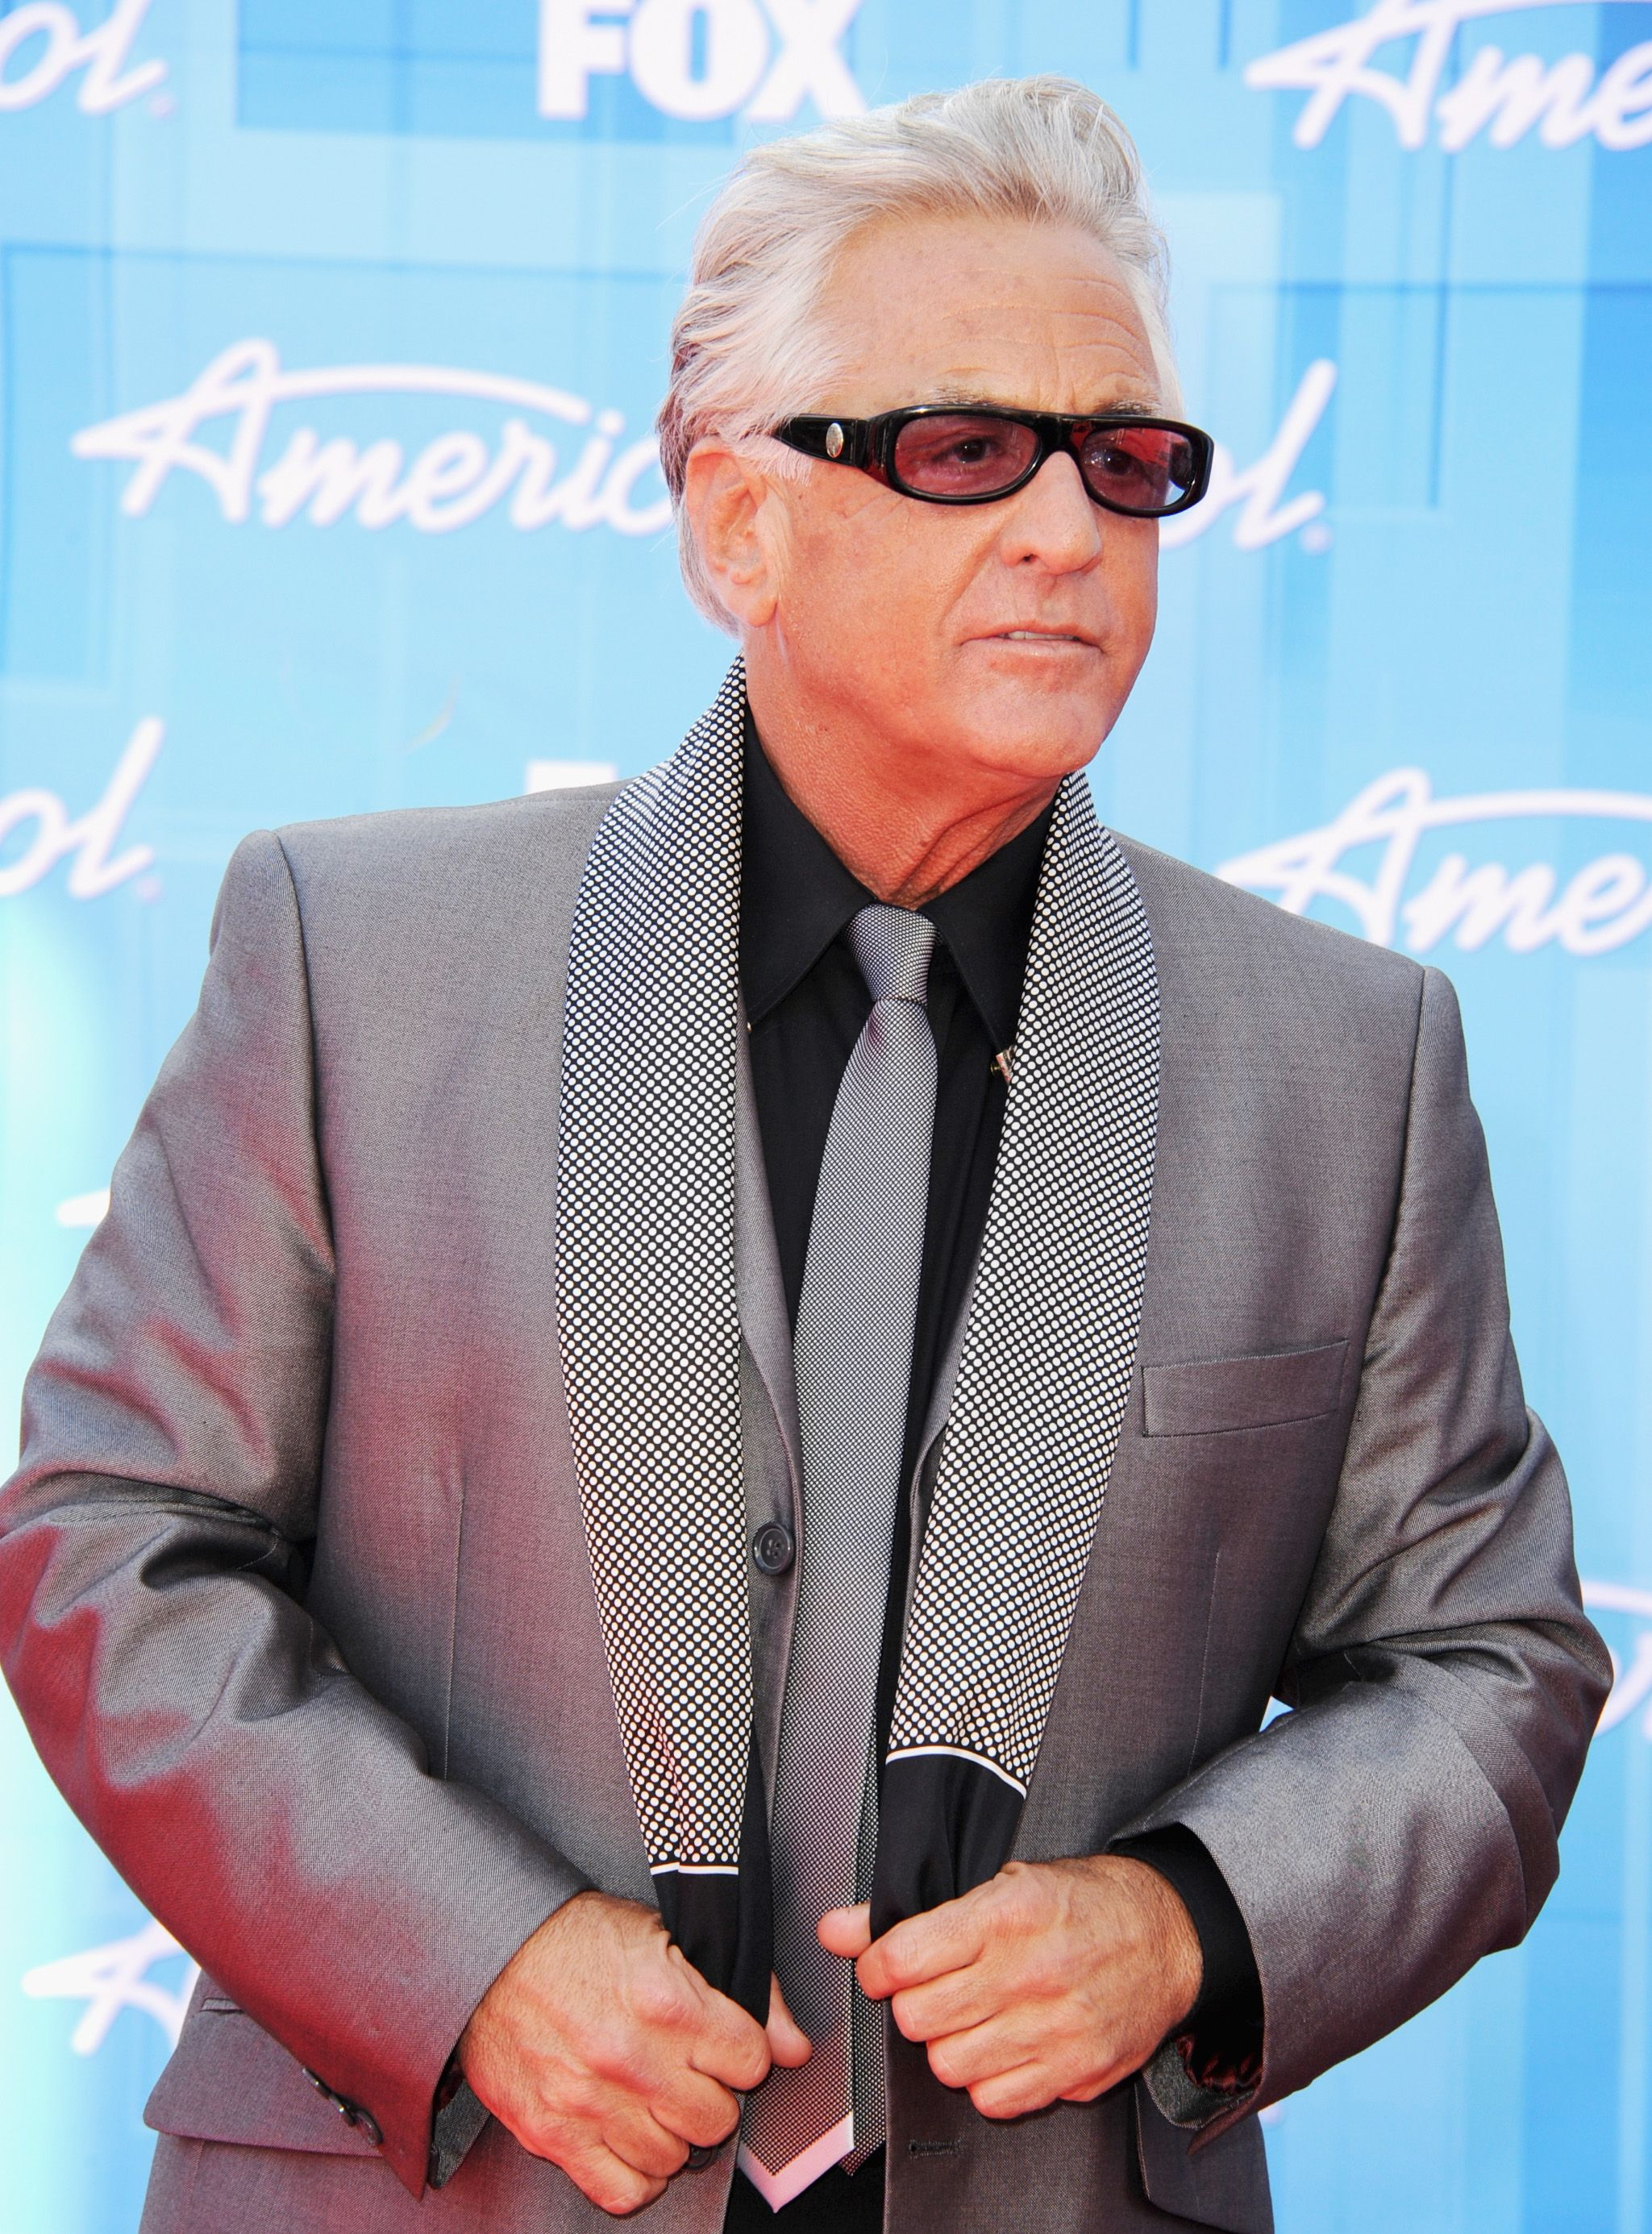 The 61-year old son of father (?) and mother(?) Barry Weiss in 2020 photo. Barry Weiss earned a million dollar salary - leaving the net worth at million in 2020